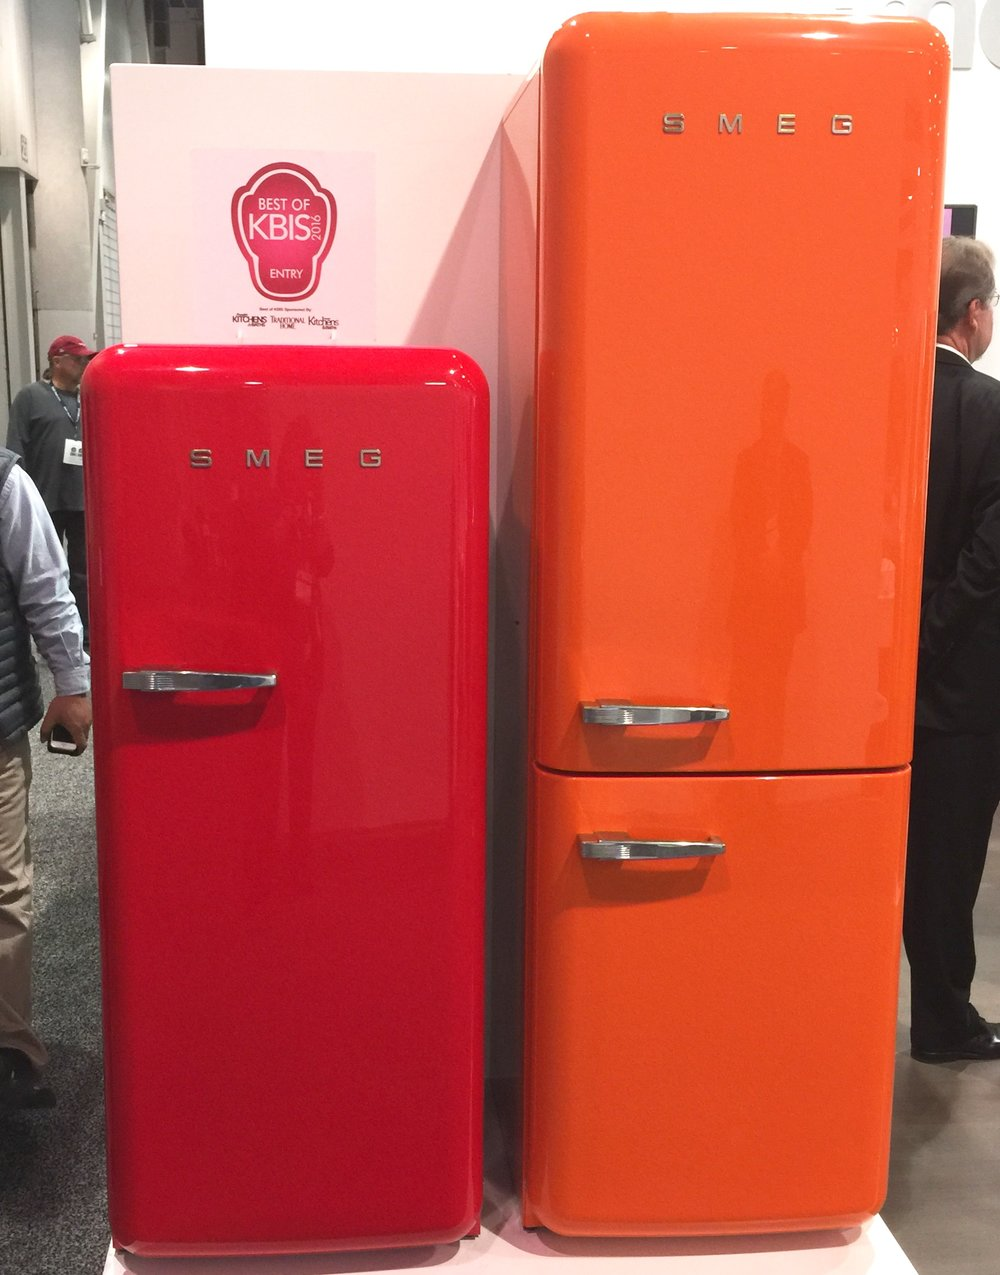 Cute little Smeg refrigerators seen at KBIS 2016